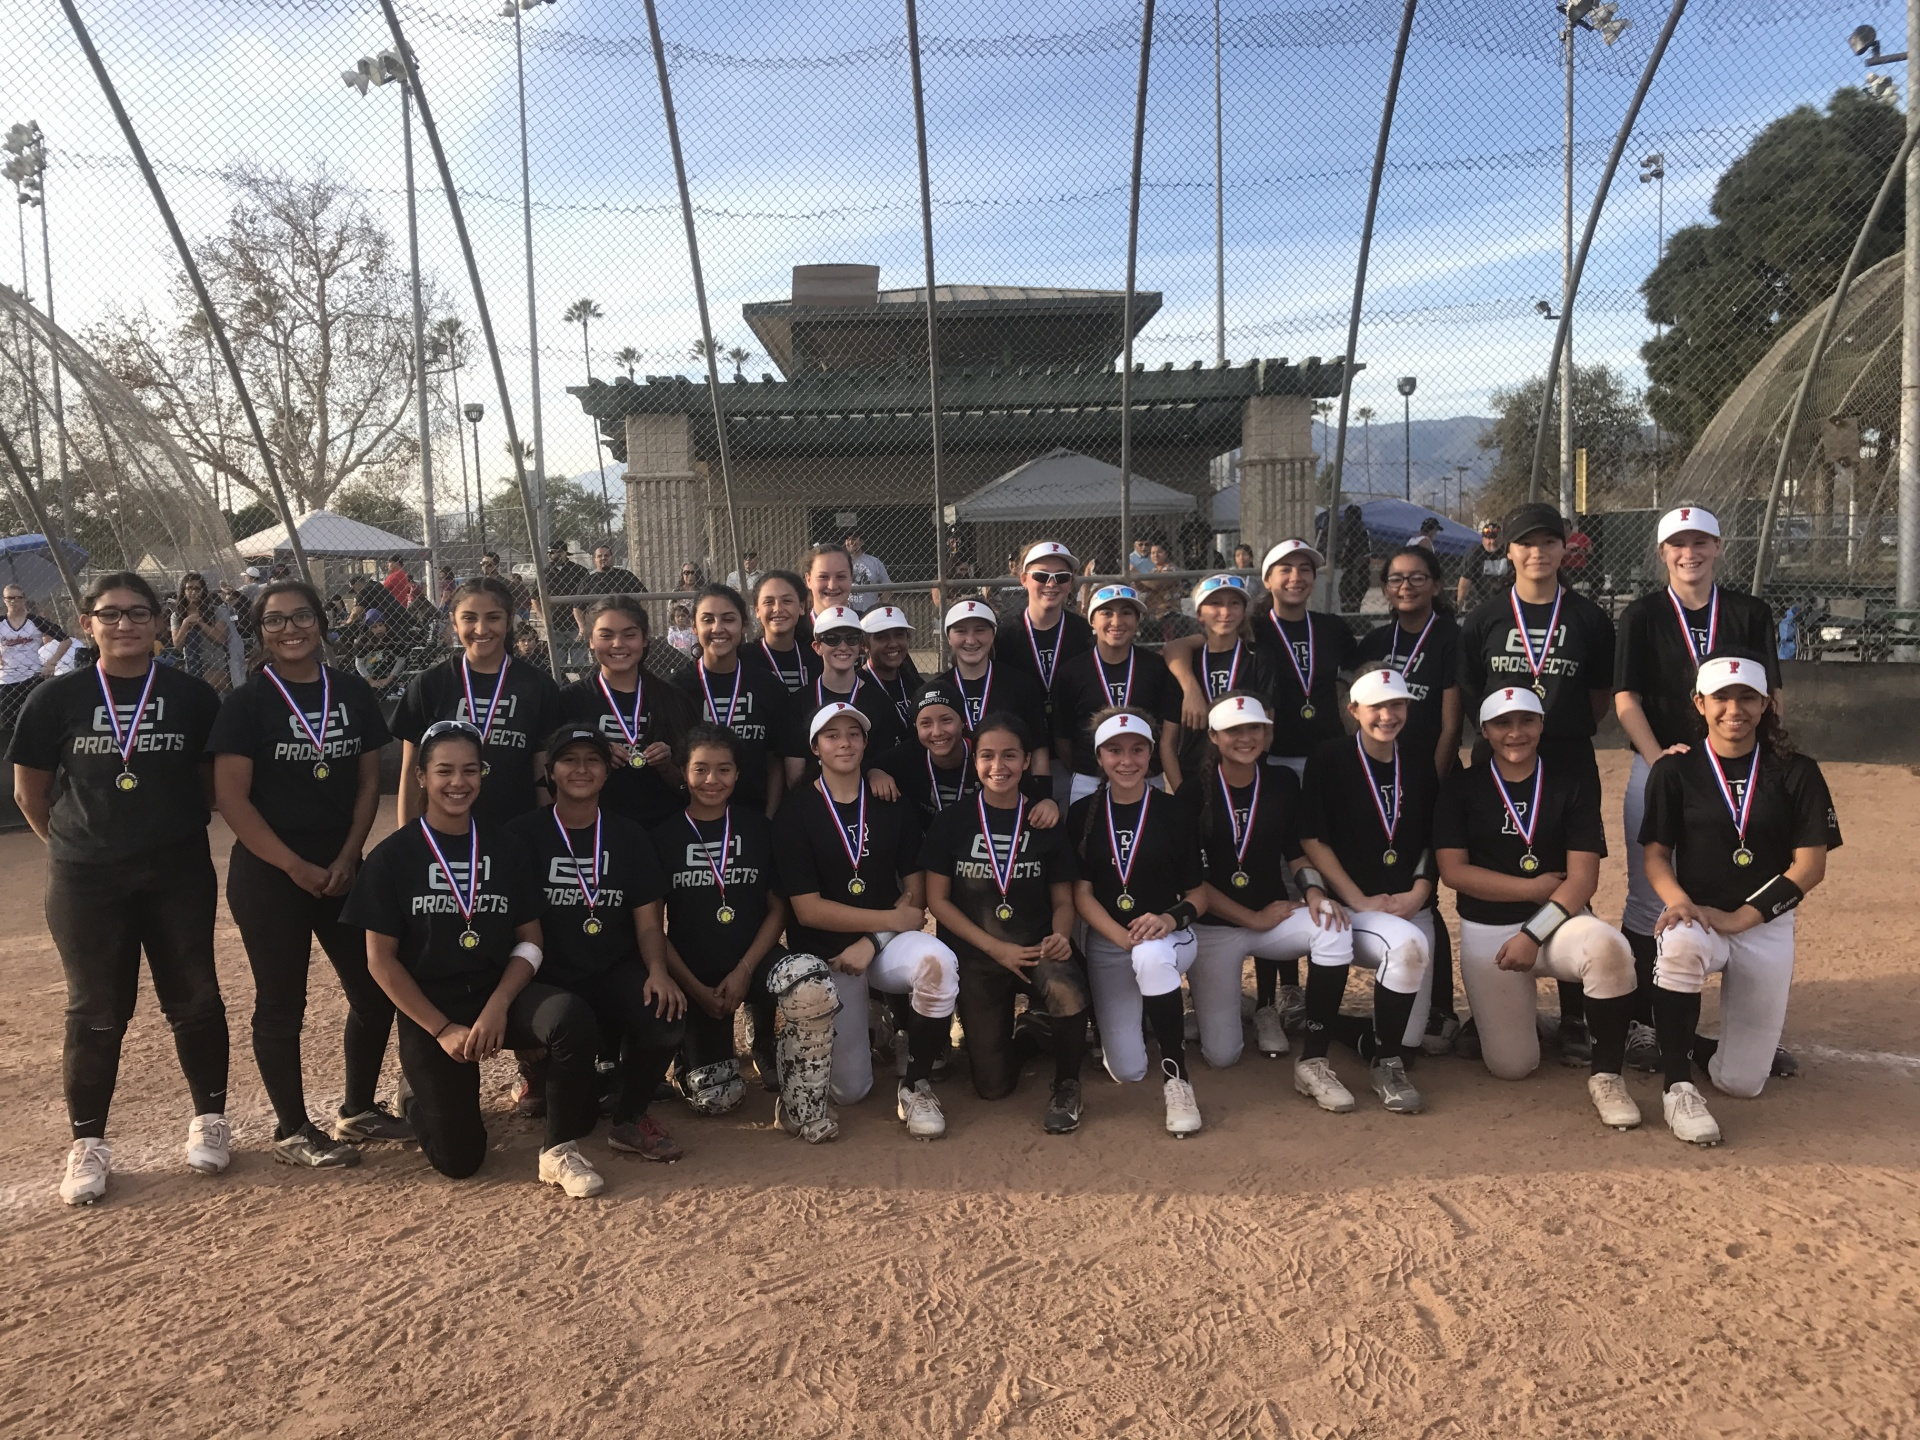 14u Firecrackers and E1 Prospects